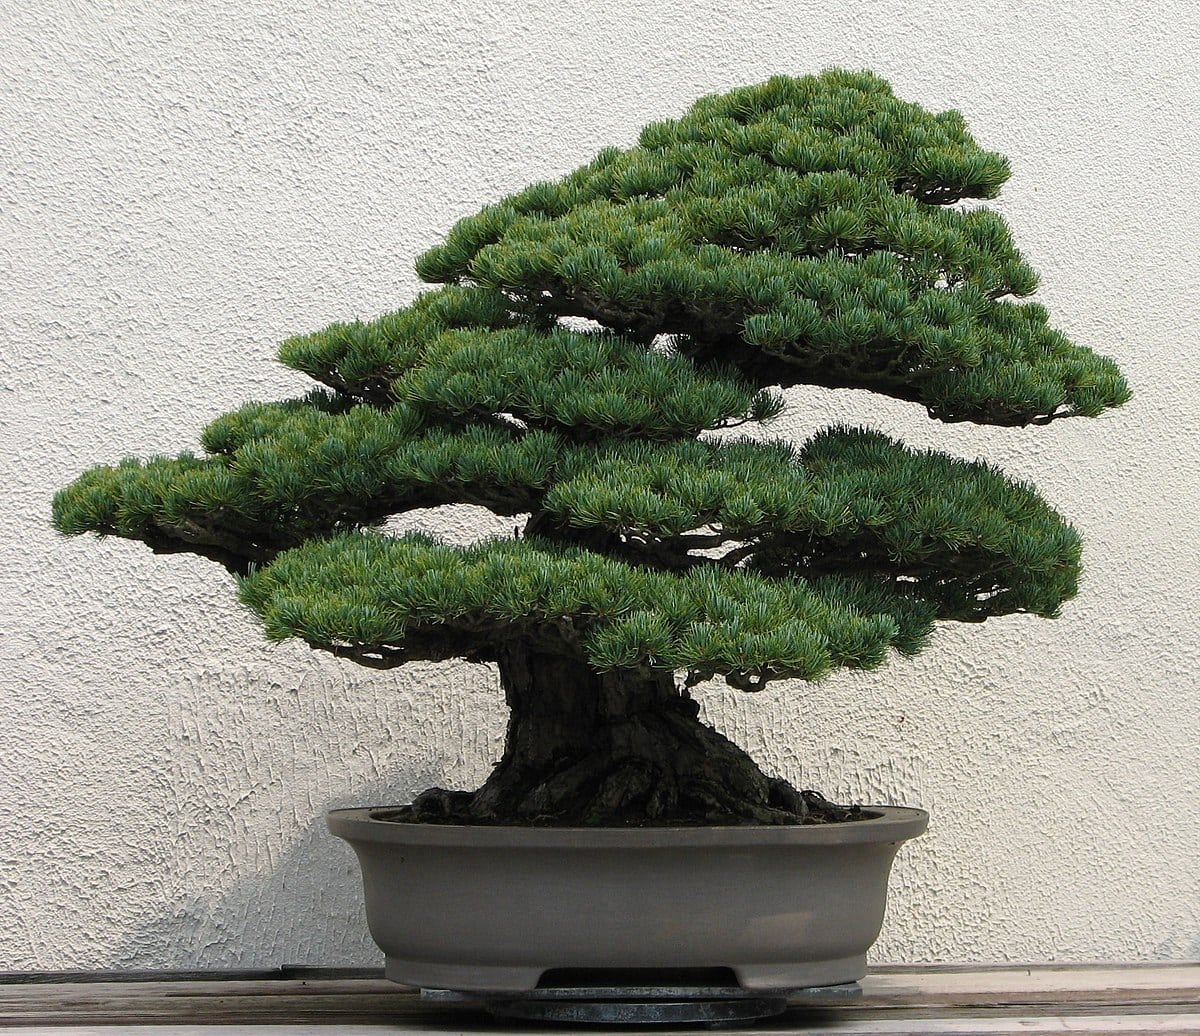 How To Make A Bonsai Tree Gardener Wiring In